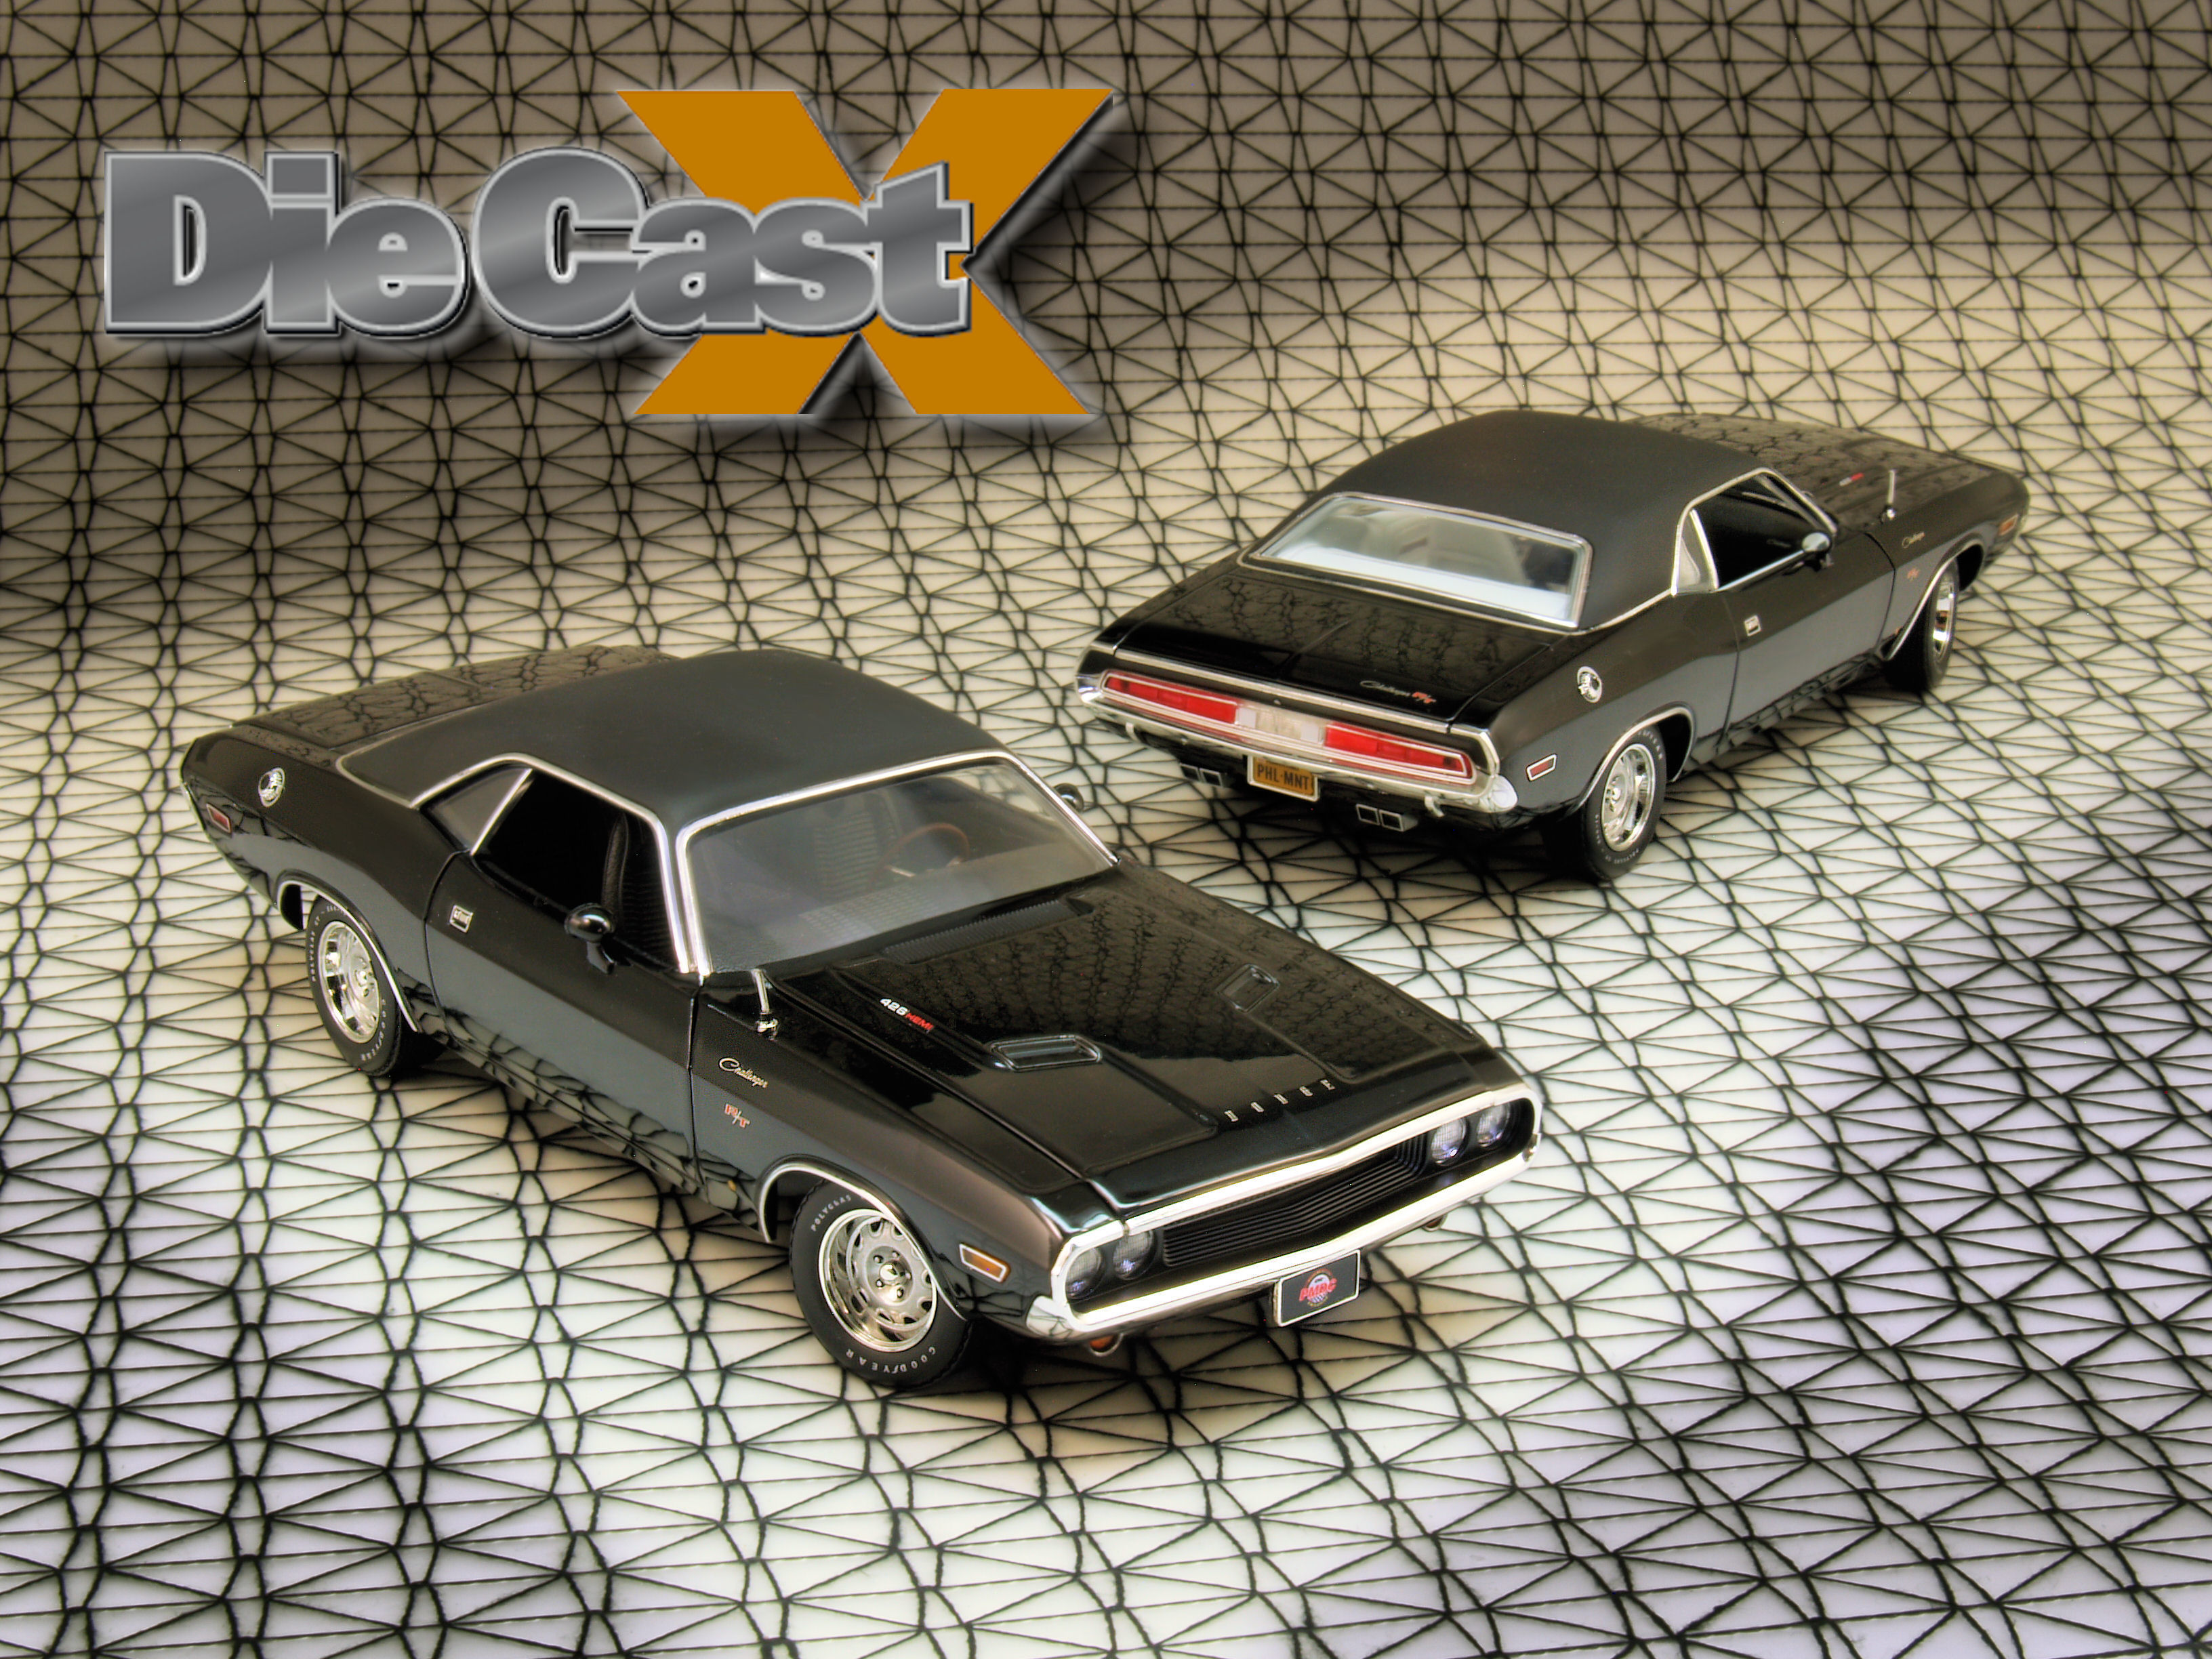 PhillyMint 1:24 1970 Hemi Challenger R/T: Basic, Black, and Badass